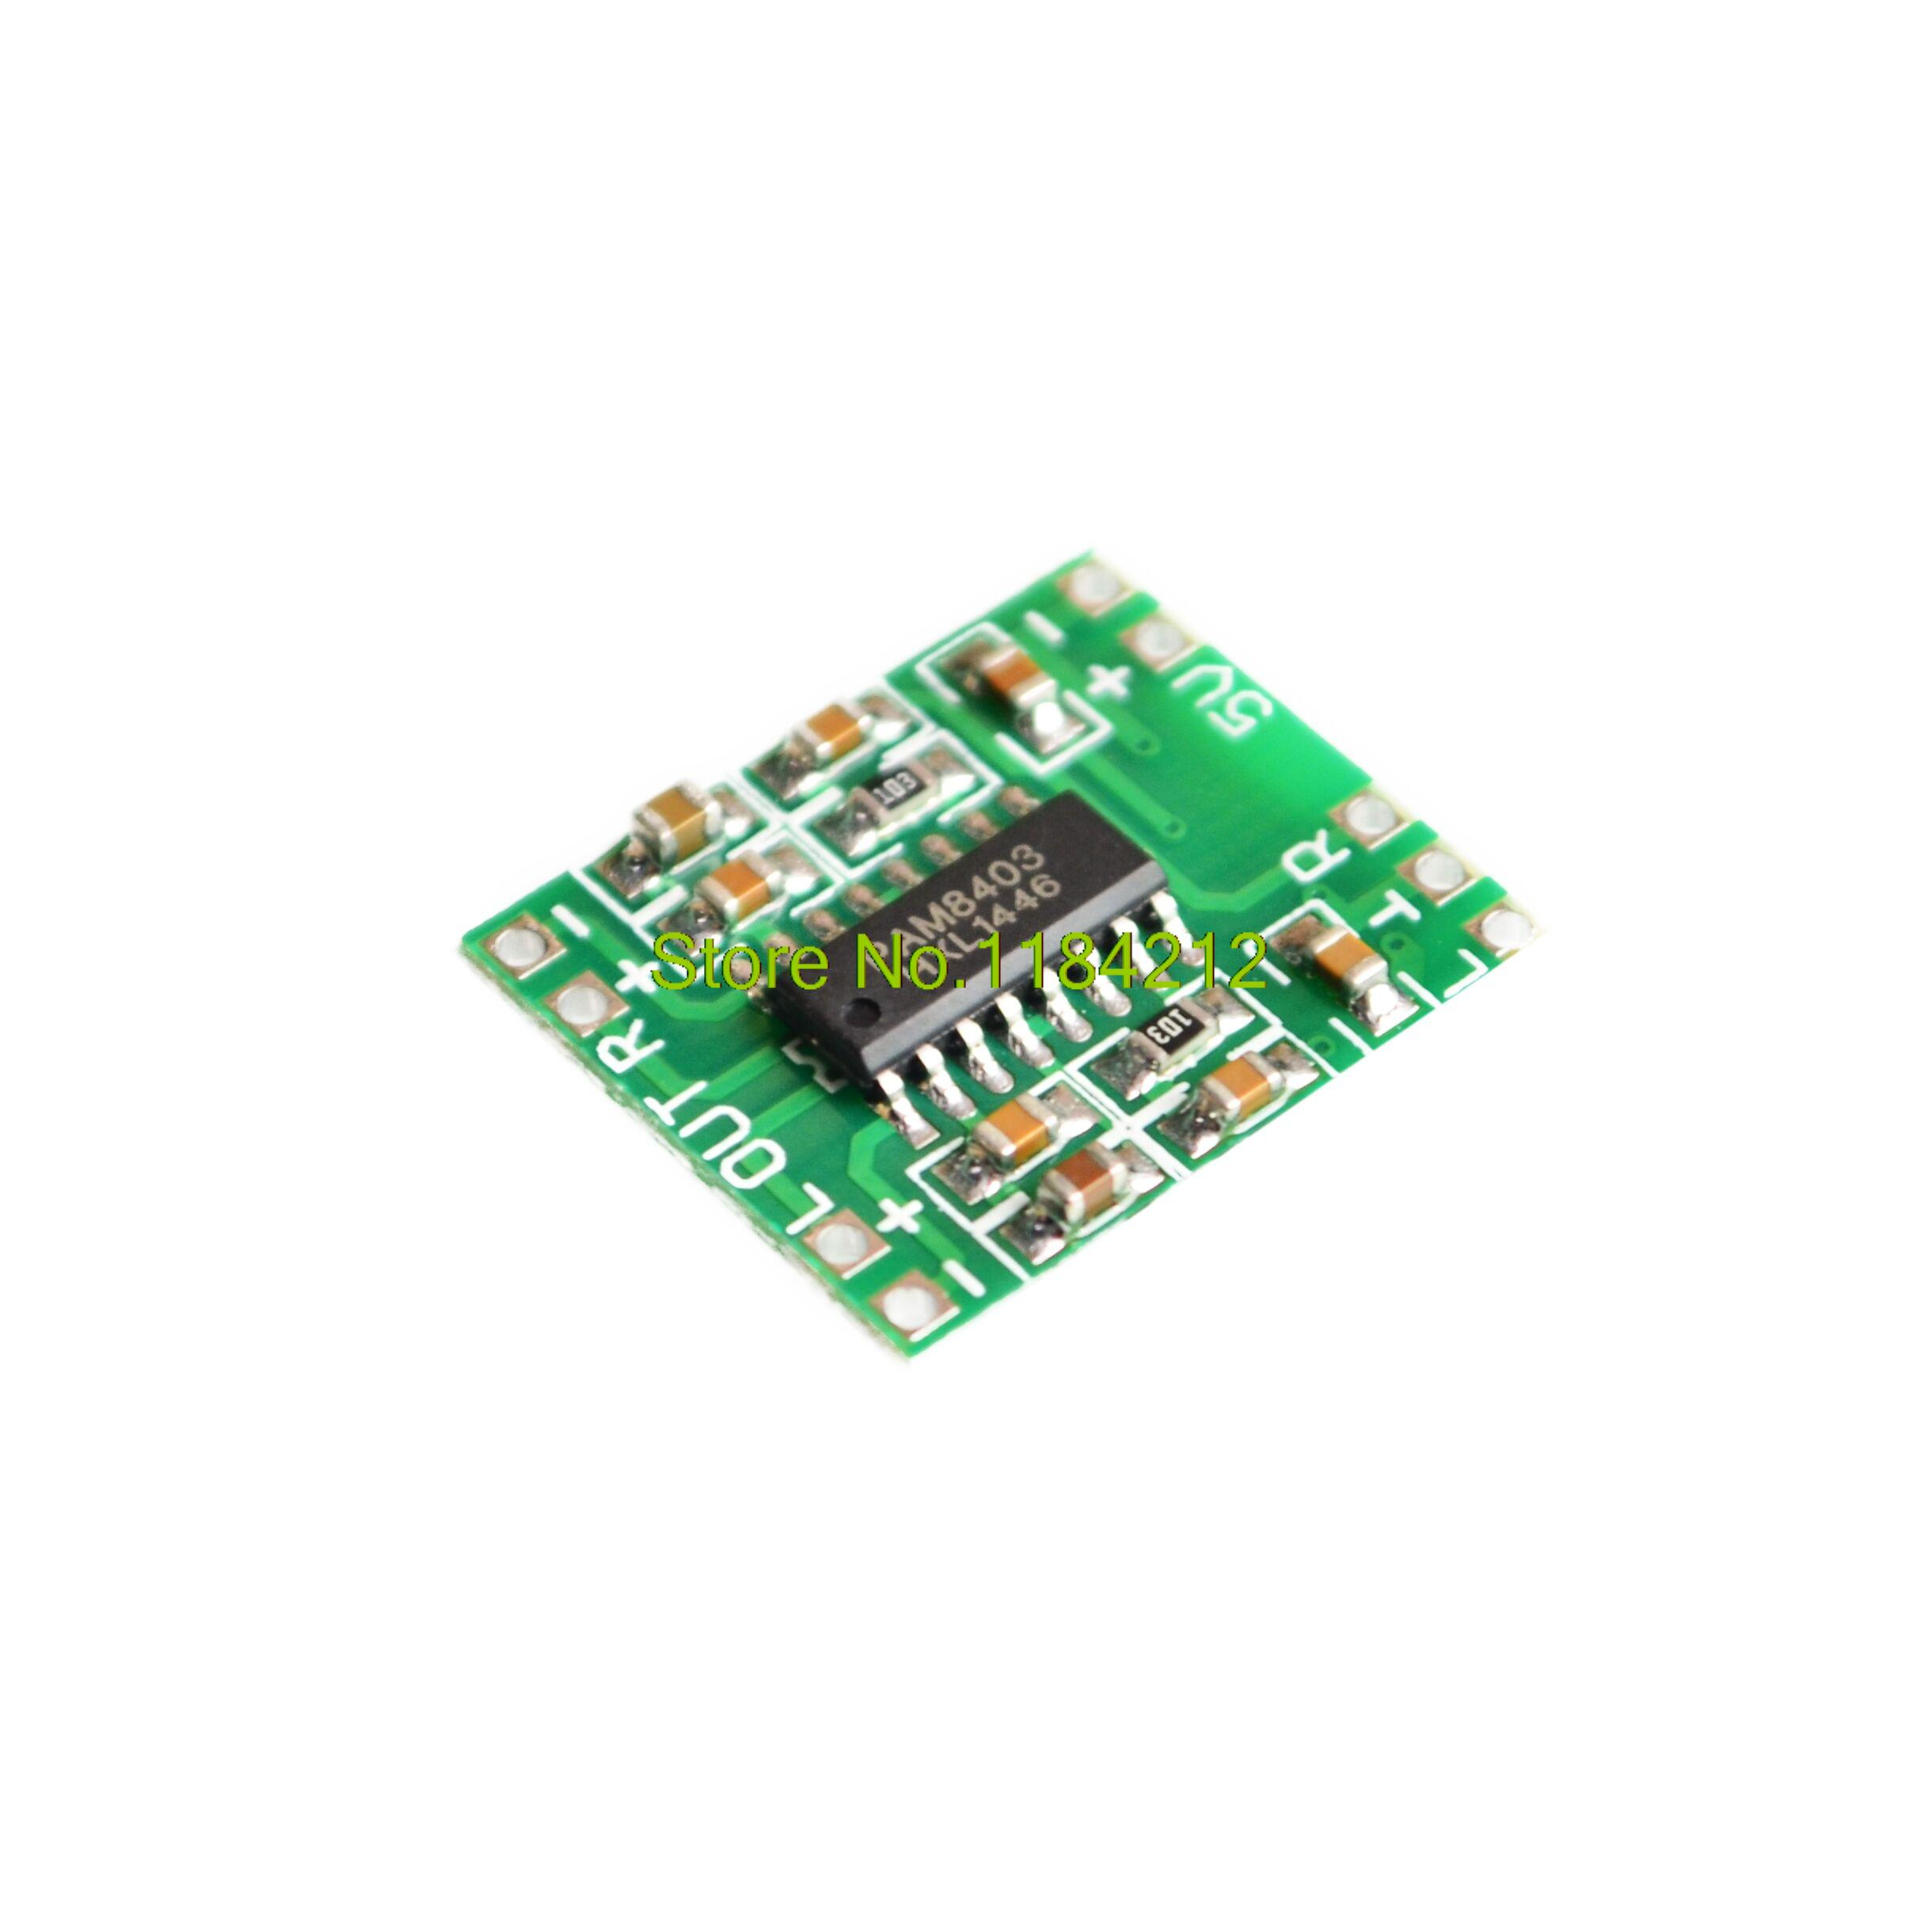 NEW 2 Channels 3W Digital Power PAM8403 Class D Audio Module Amplifier Board USB DC 5V Mini Class-D Digital Amplifier Board LCD